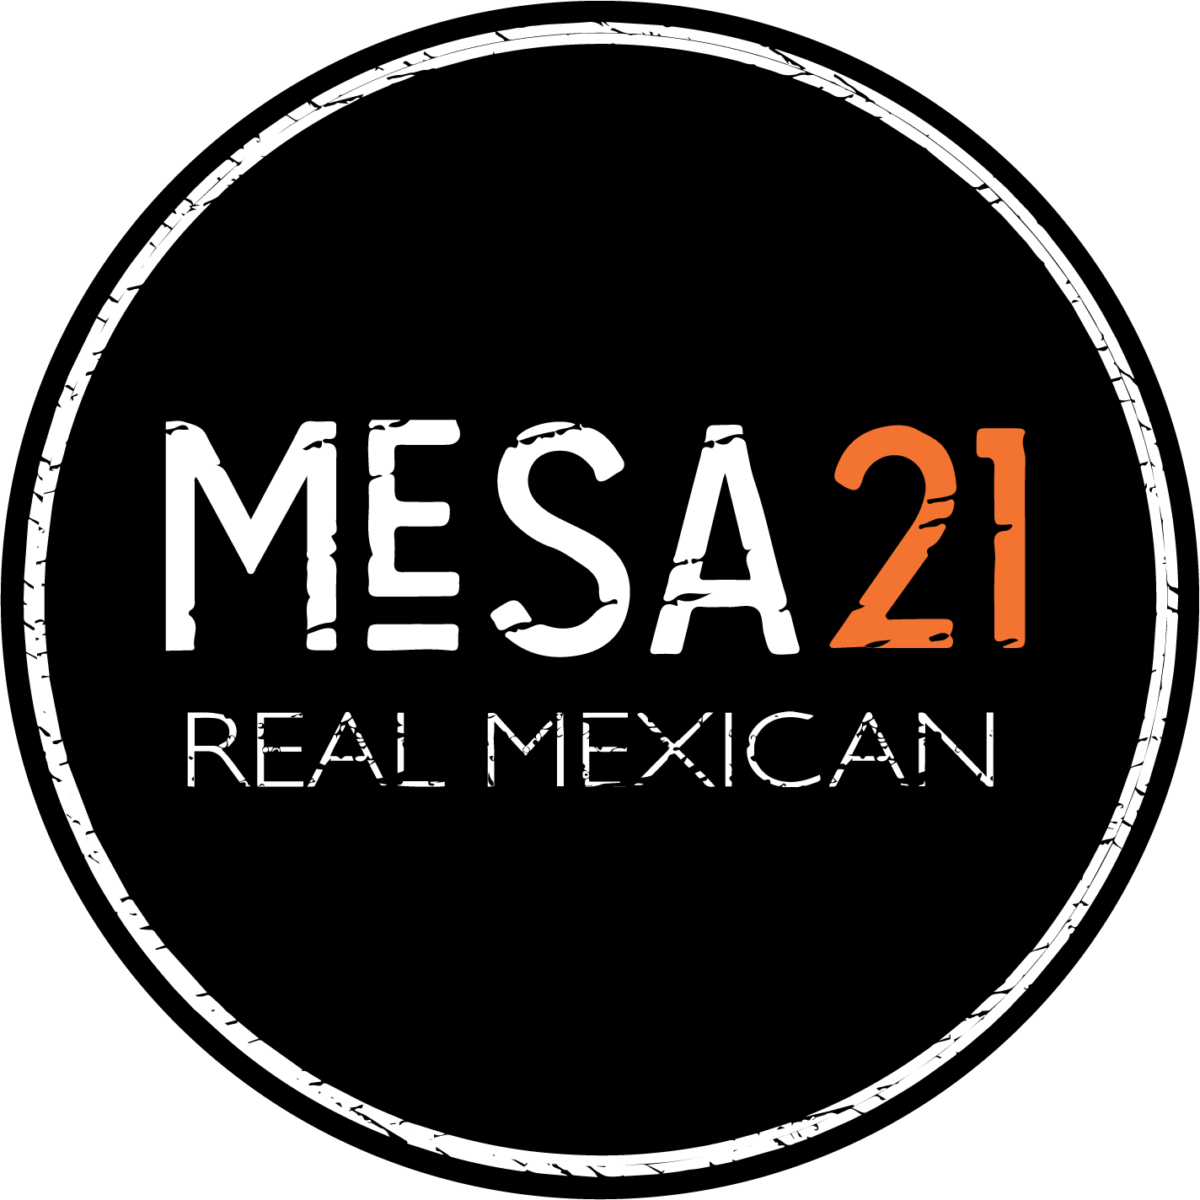 """Our mission is to redefine the meaning of real Mexican dining on American soil"""